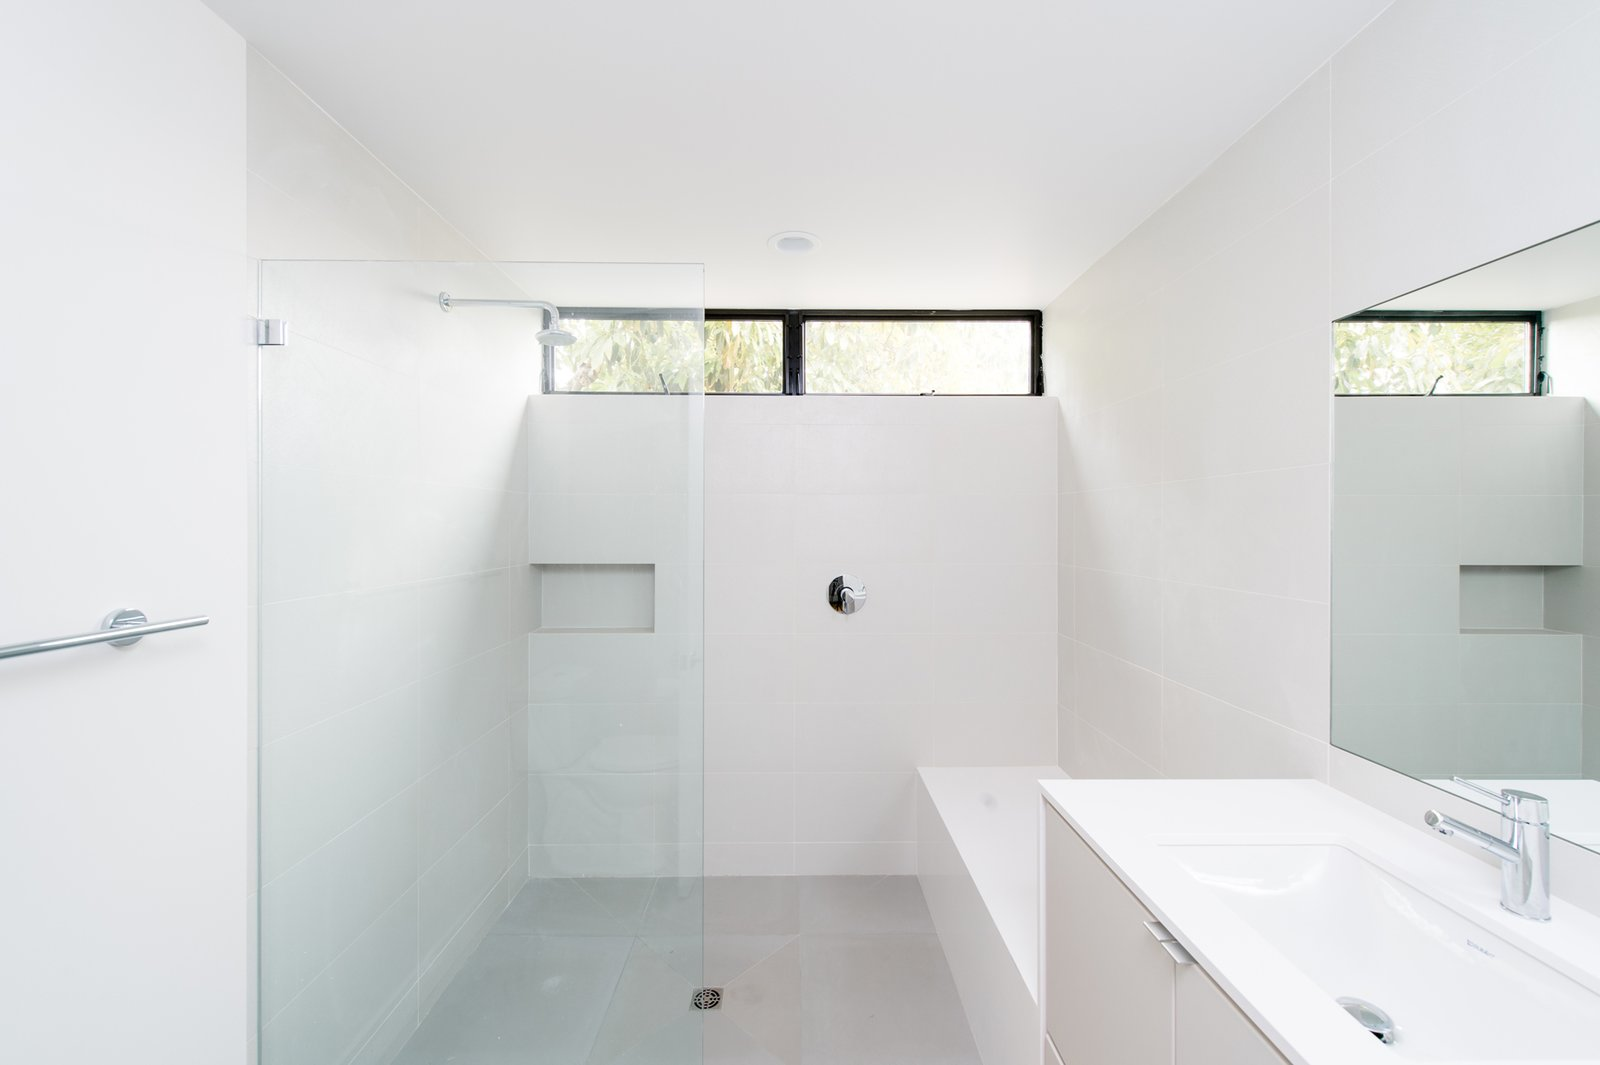 Bath Room, Engineered Quartz Counter, Porcelain Tile Floor, Undermount Sink, Open Shower, Ceiling Lighting, and Ceramic Tile Wall A minimalist secondary bath features a quartz waterfall bench and oversized custom shower.  Villa Park Modern by MYD studio, inc.